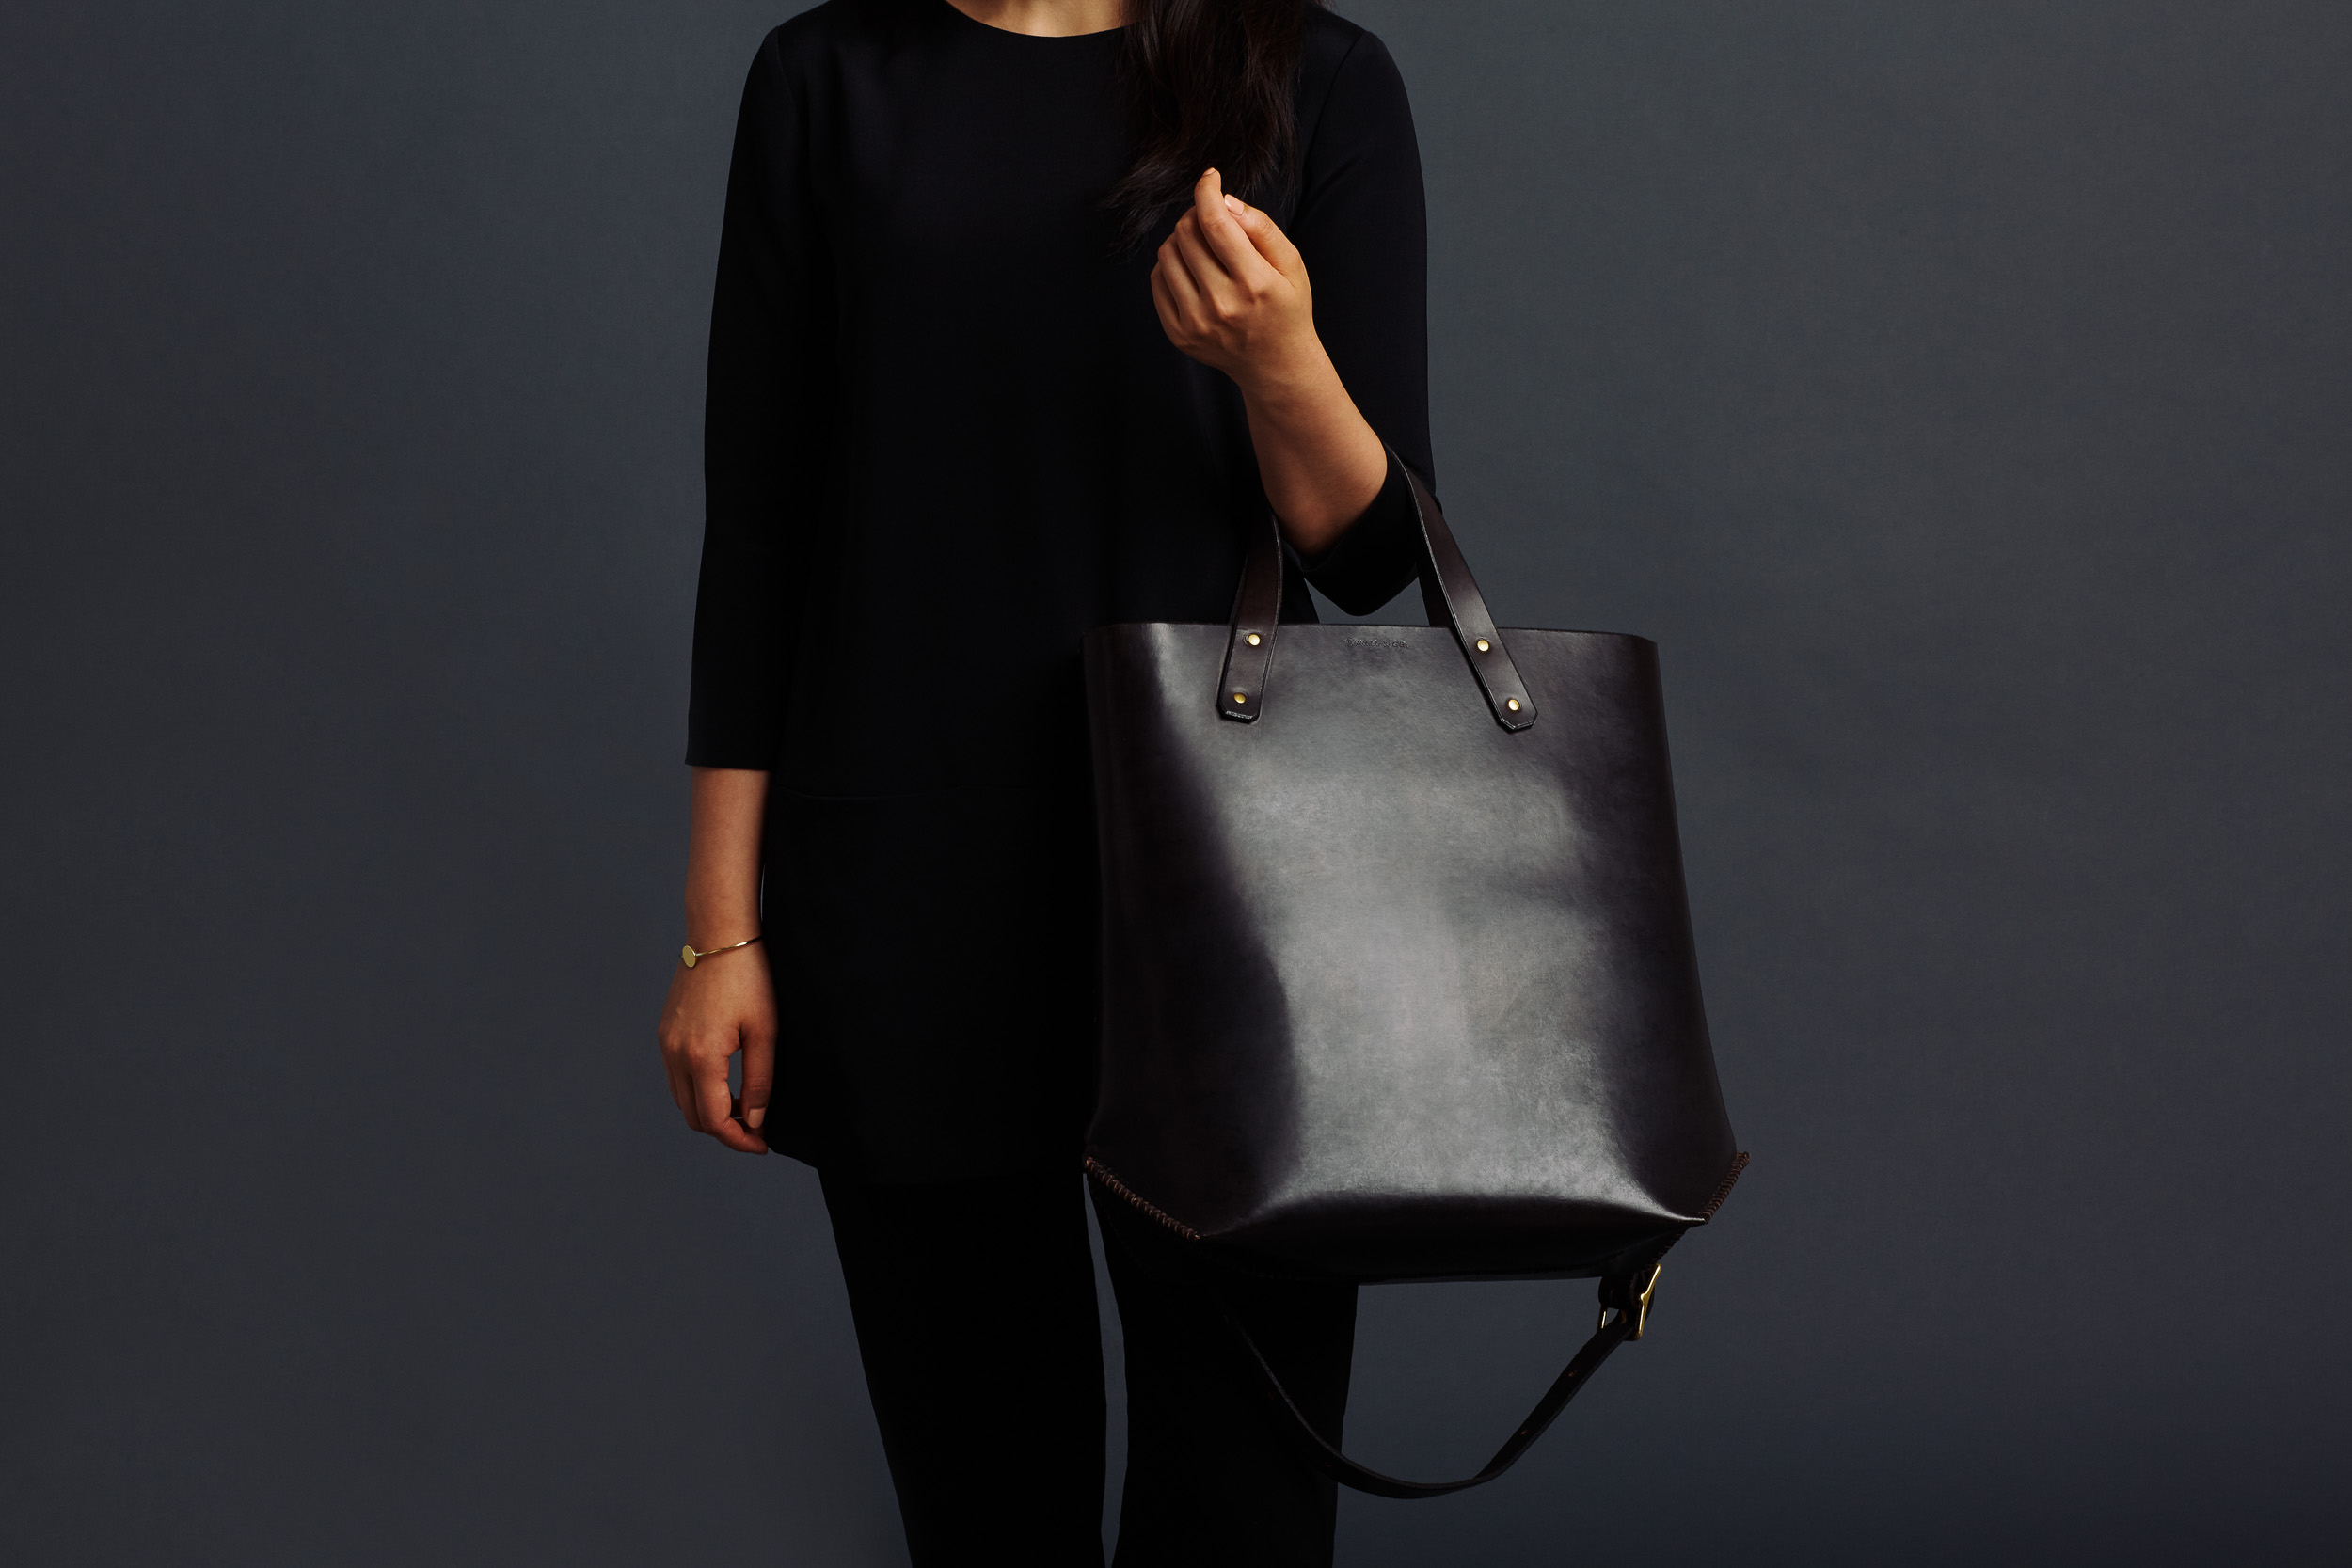 The Satchel Tote